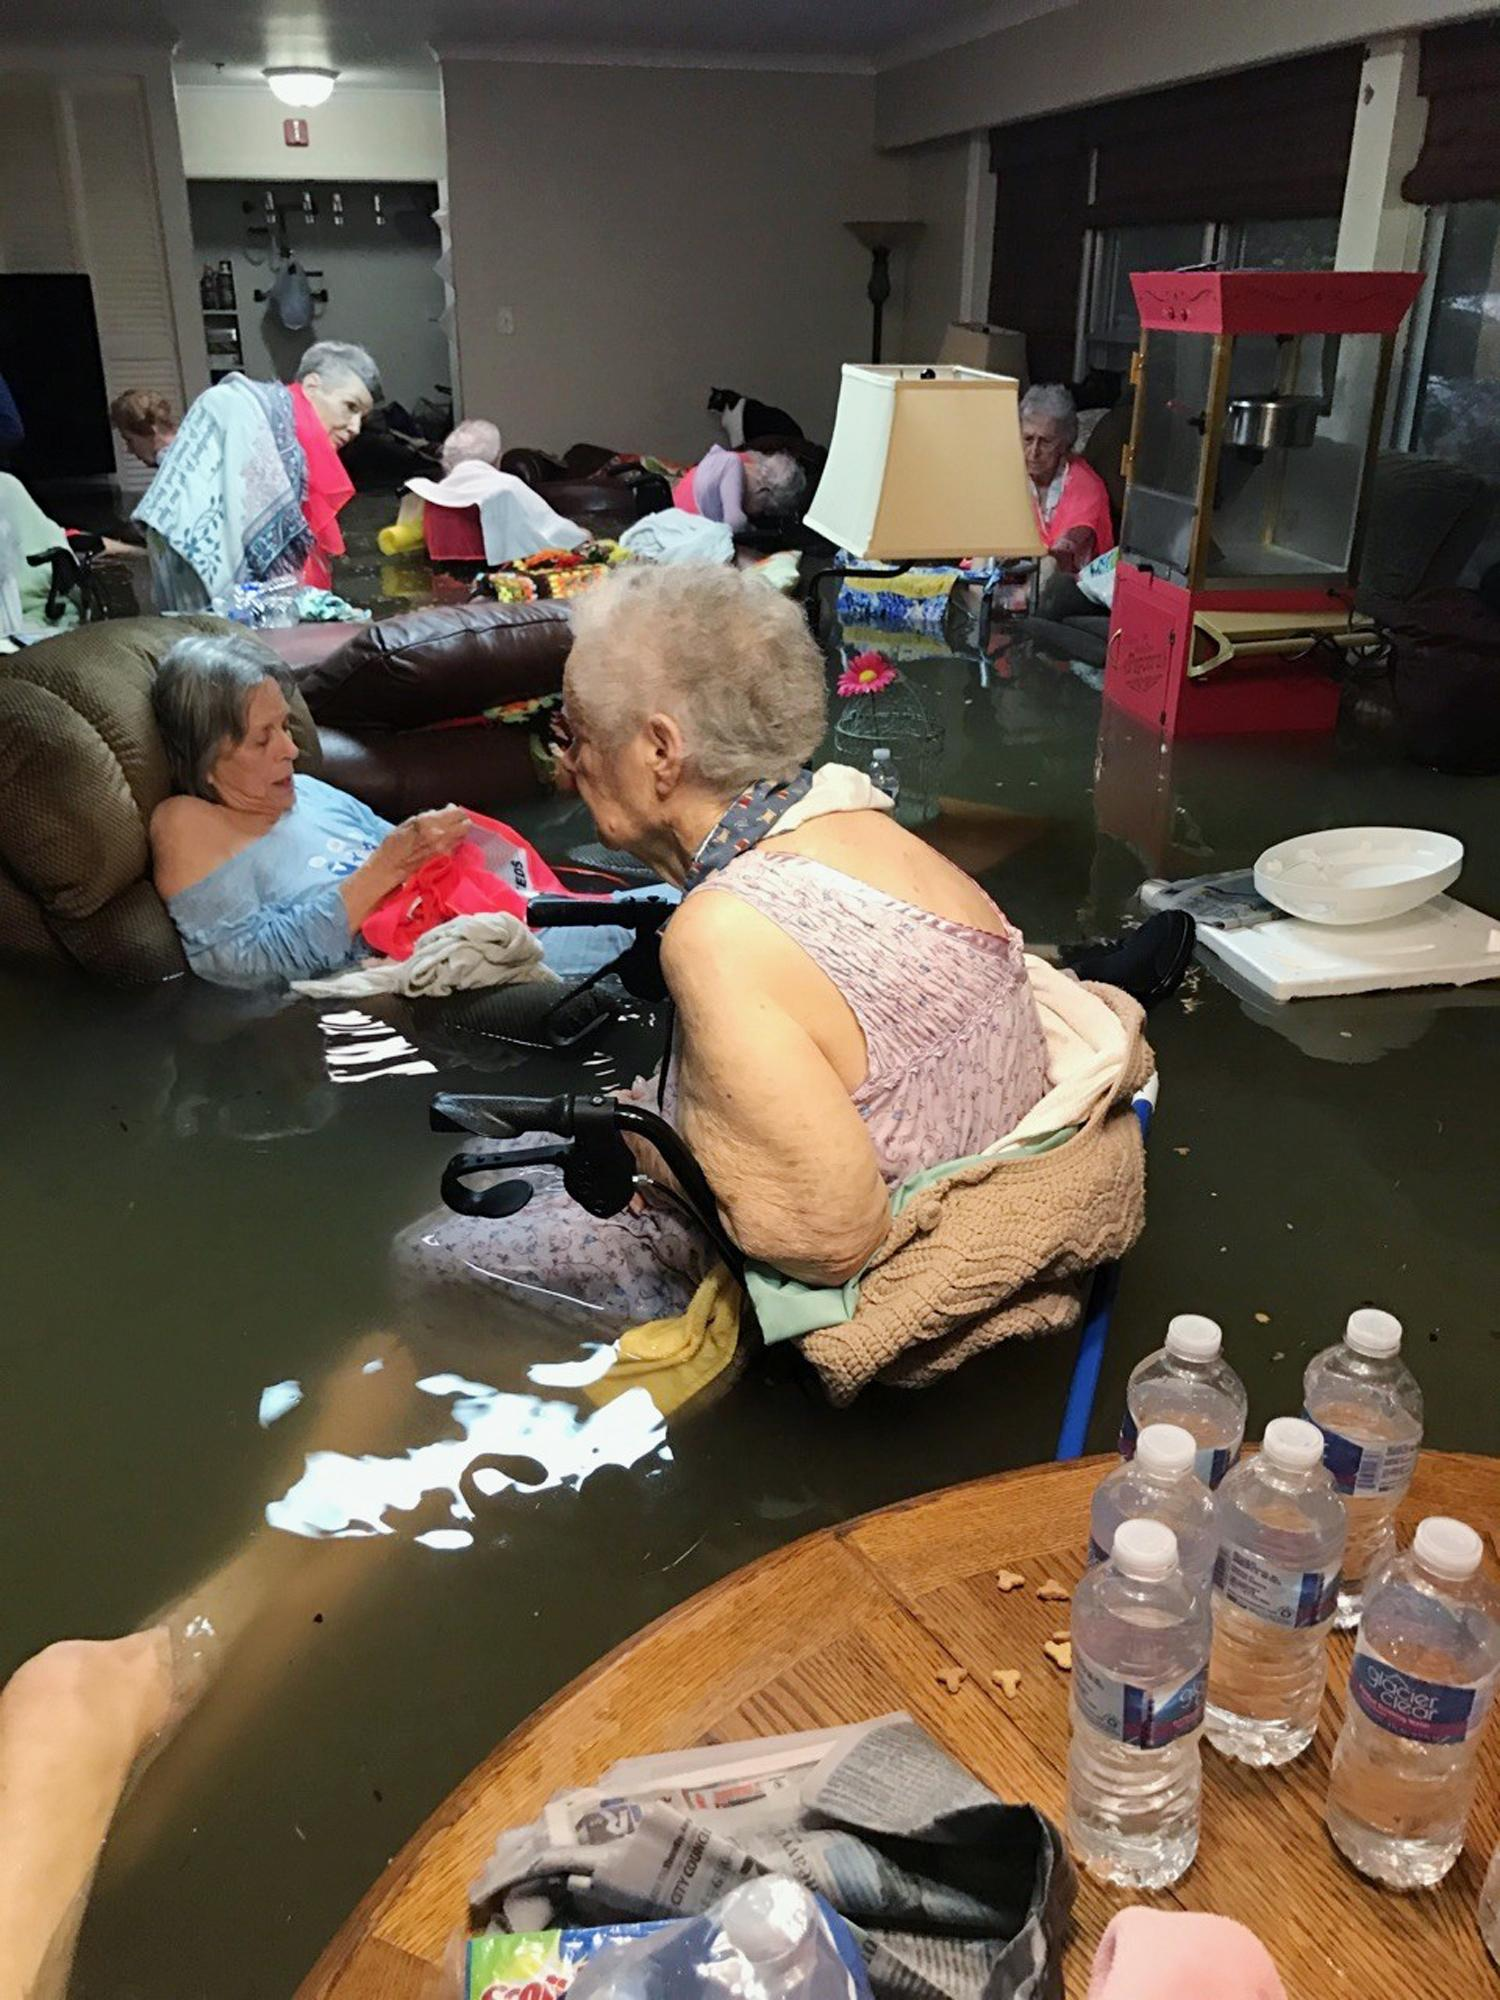 In this Sunday, Aug. 27, 2017, photo provided by Trudy Lampson, residents of the La Vita Bella nursing home in Dickinson, Texas, sit in waist-deep flood waters caused by Hurricane Harvey. Authorities said all the residents were safely evacuated from the facility. (Trudy Lampson via AP)